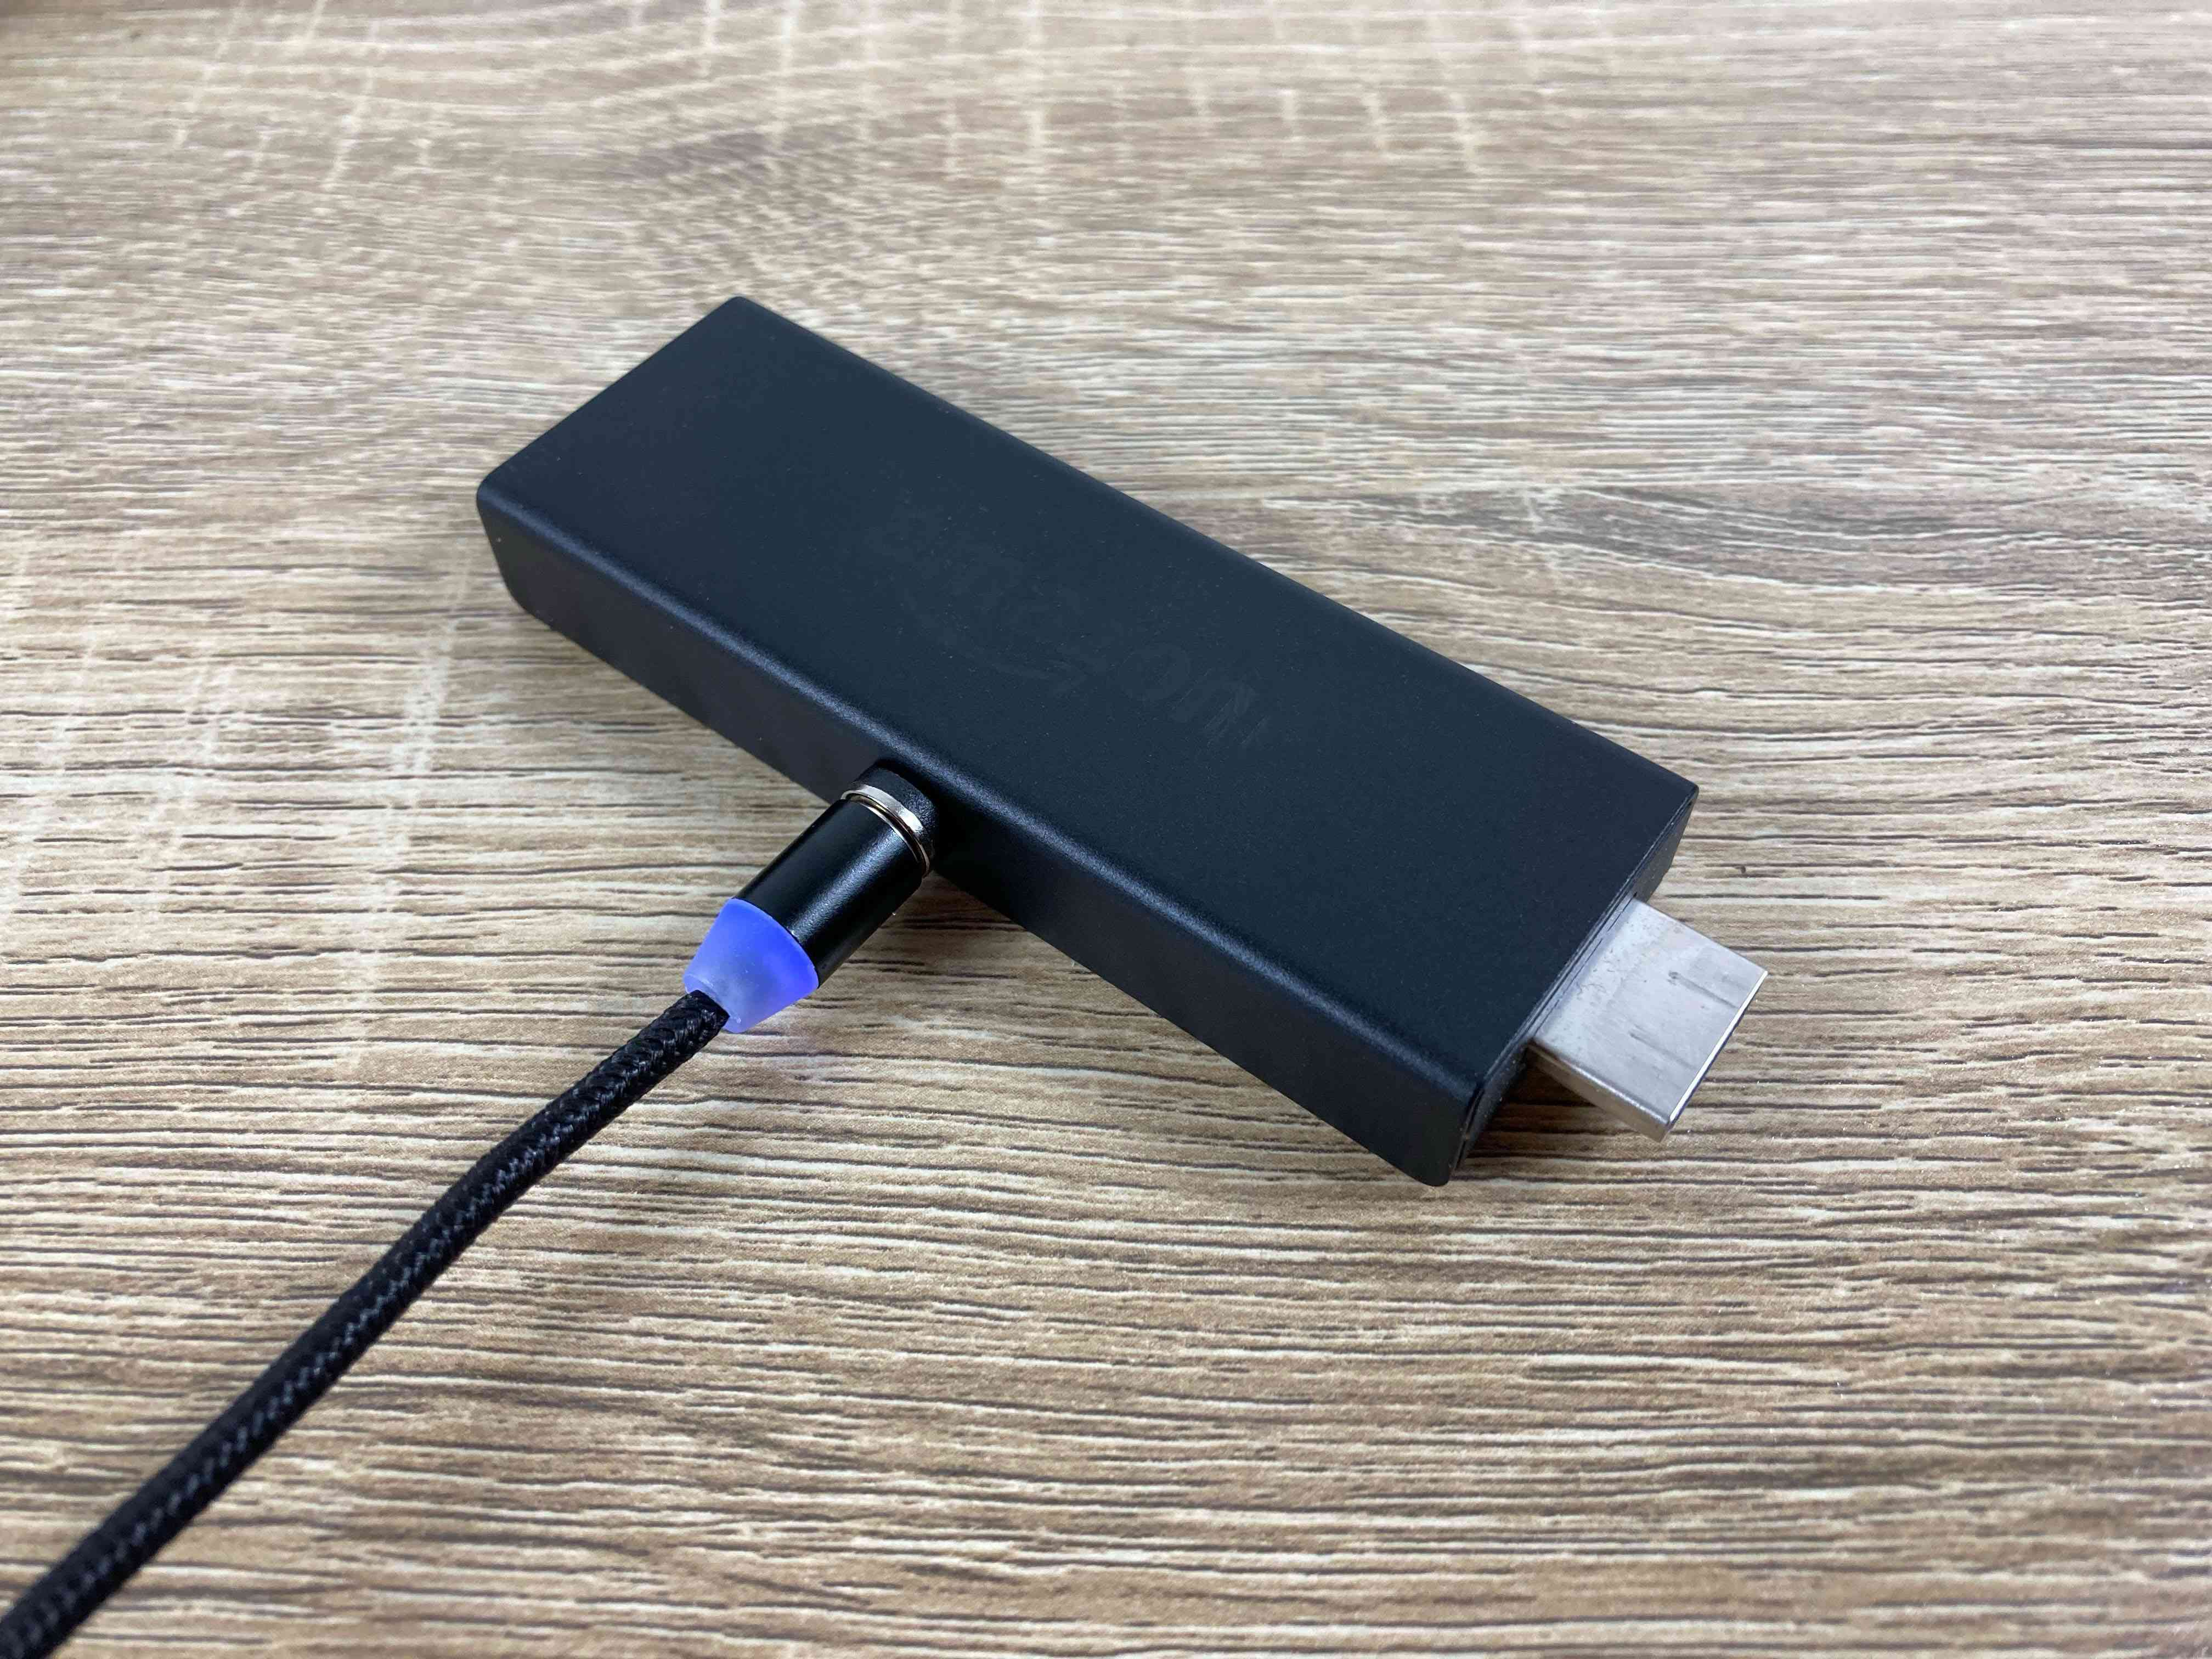 A Fire Stick plugged into a USB power source.